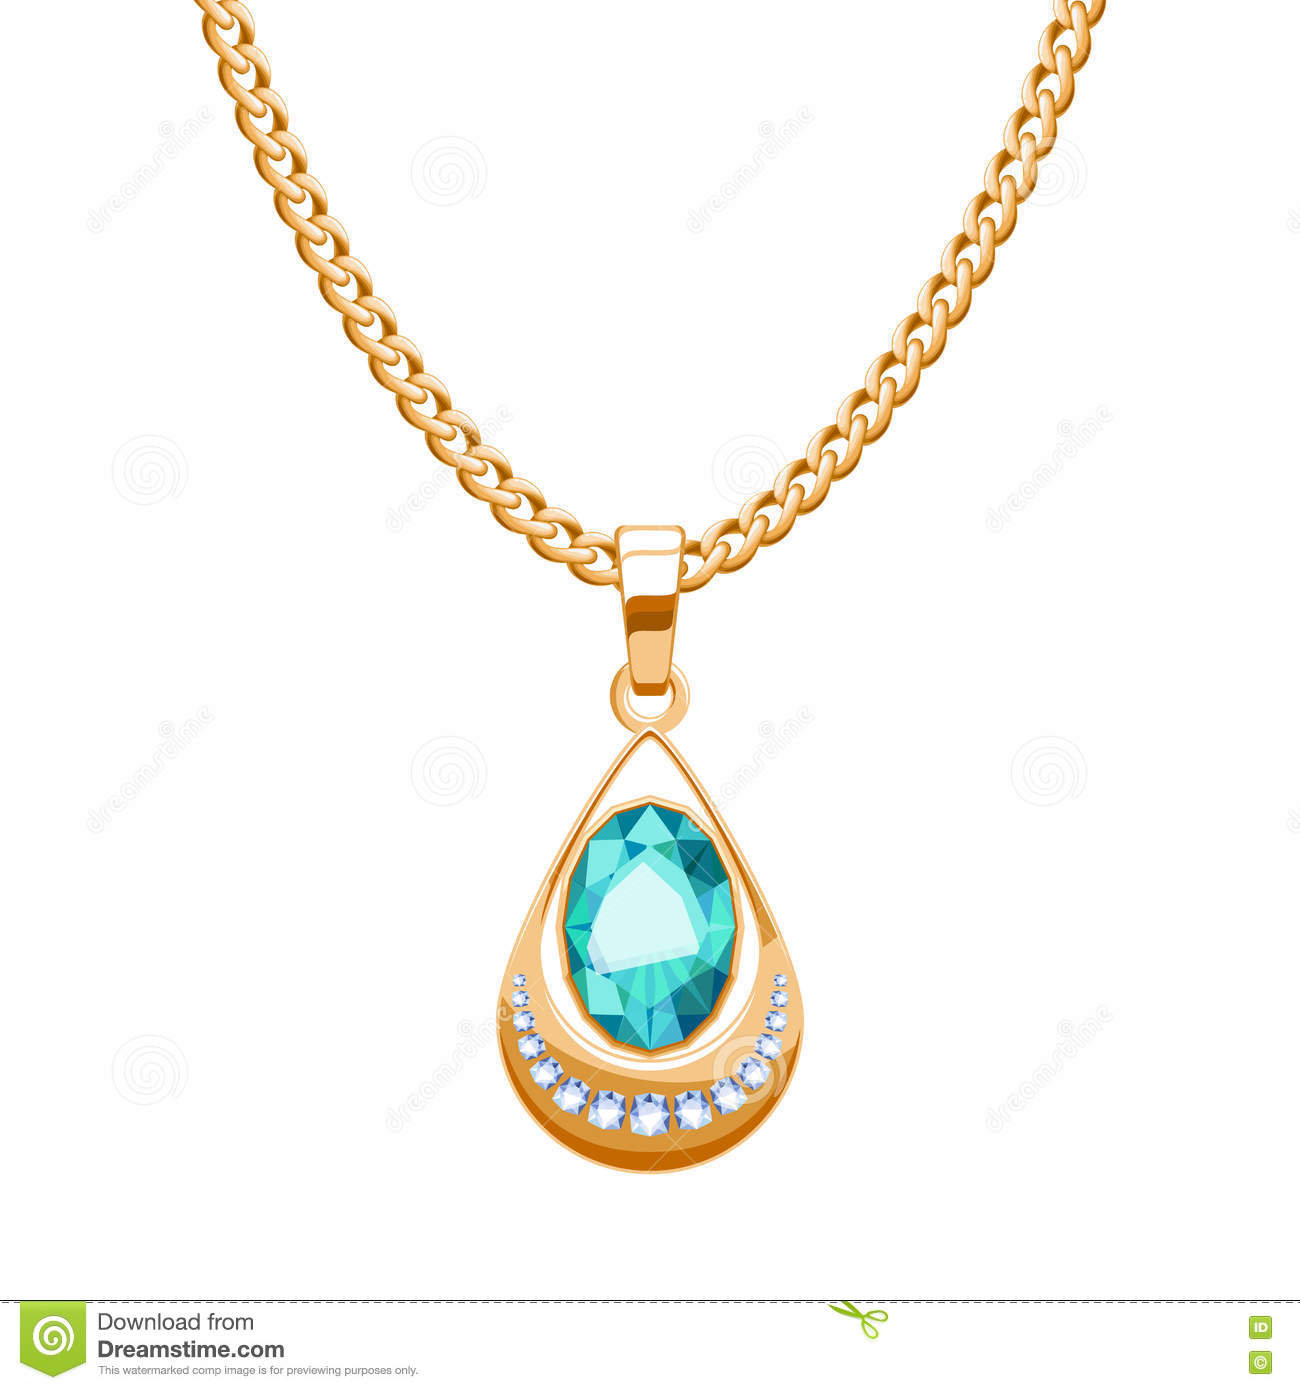 Golden chain necklace with diamonds and emerald gemstones pendant drop shape.